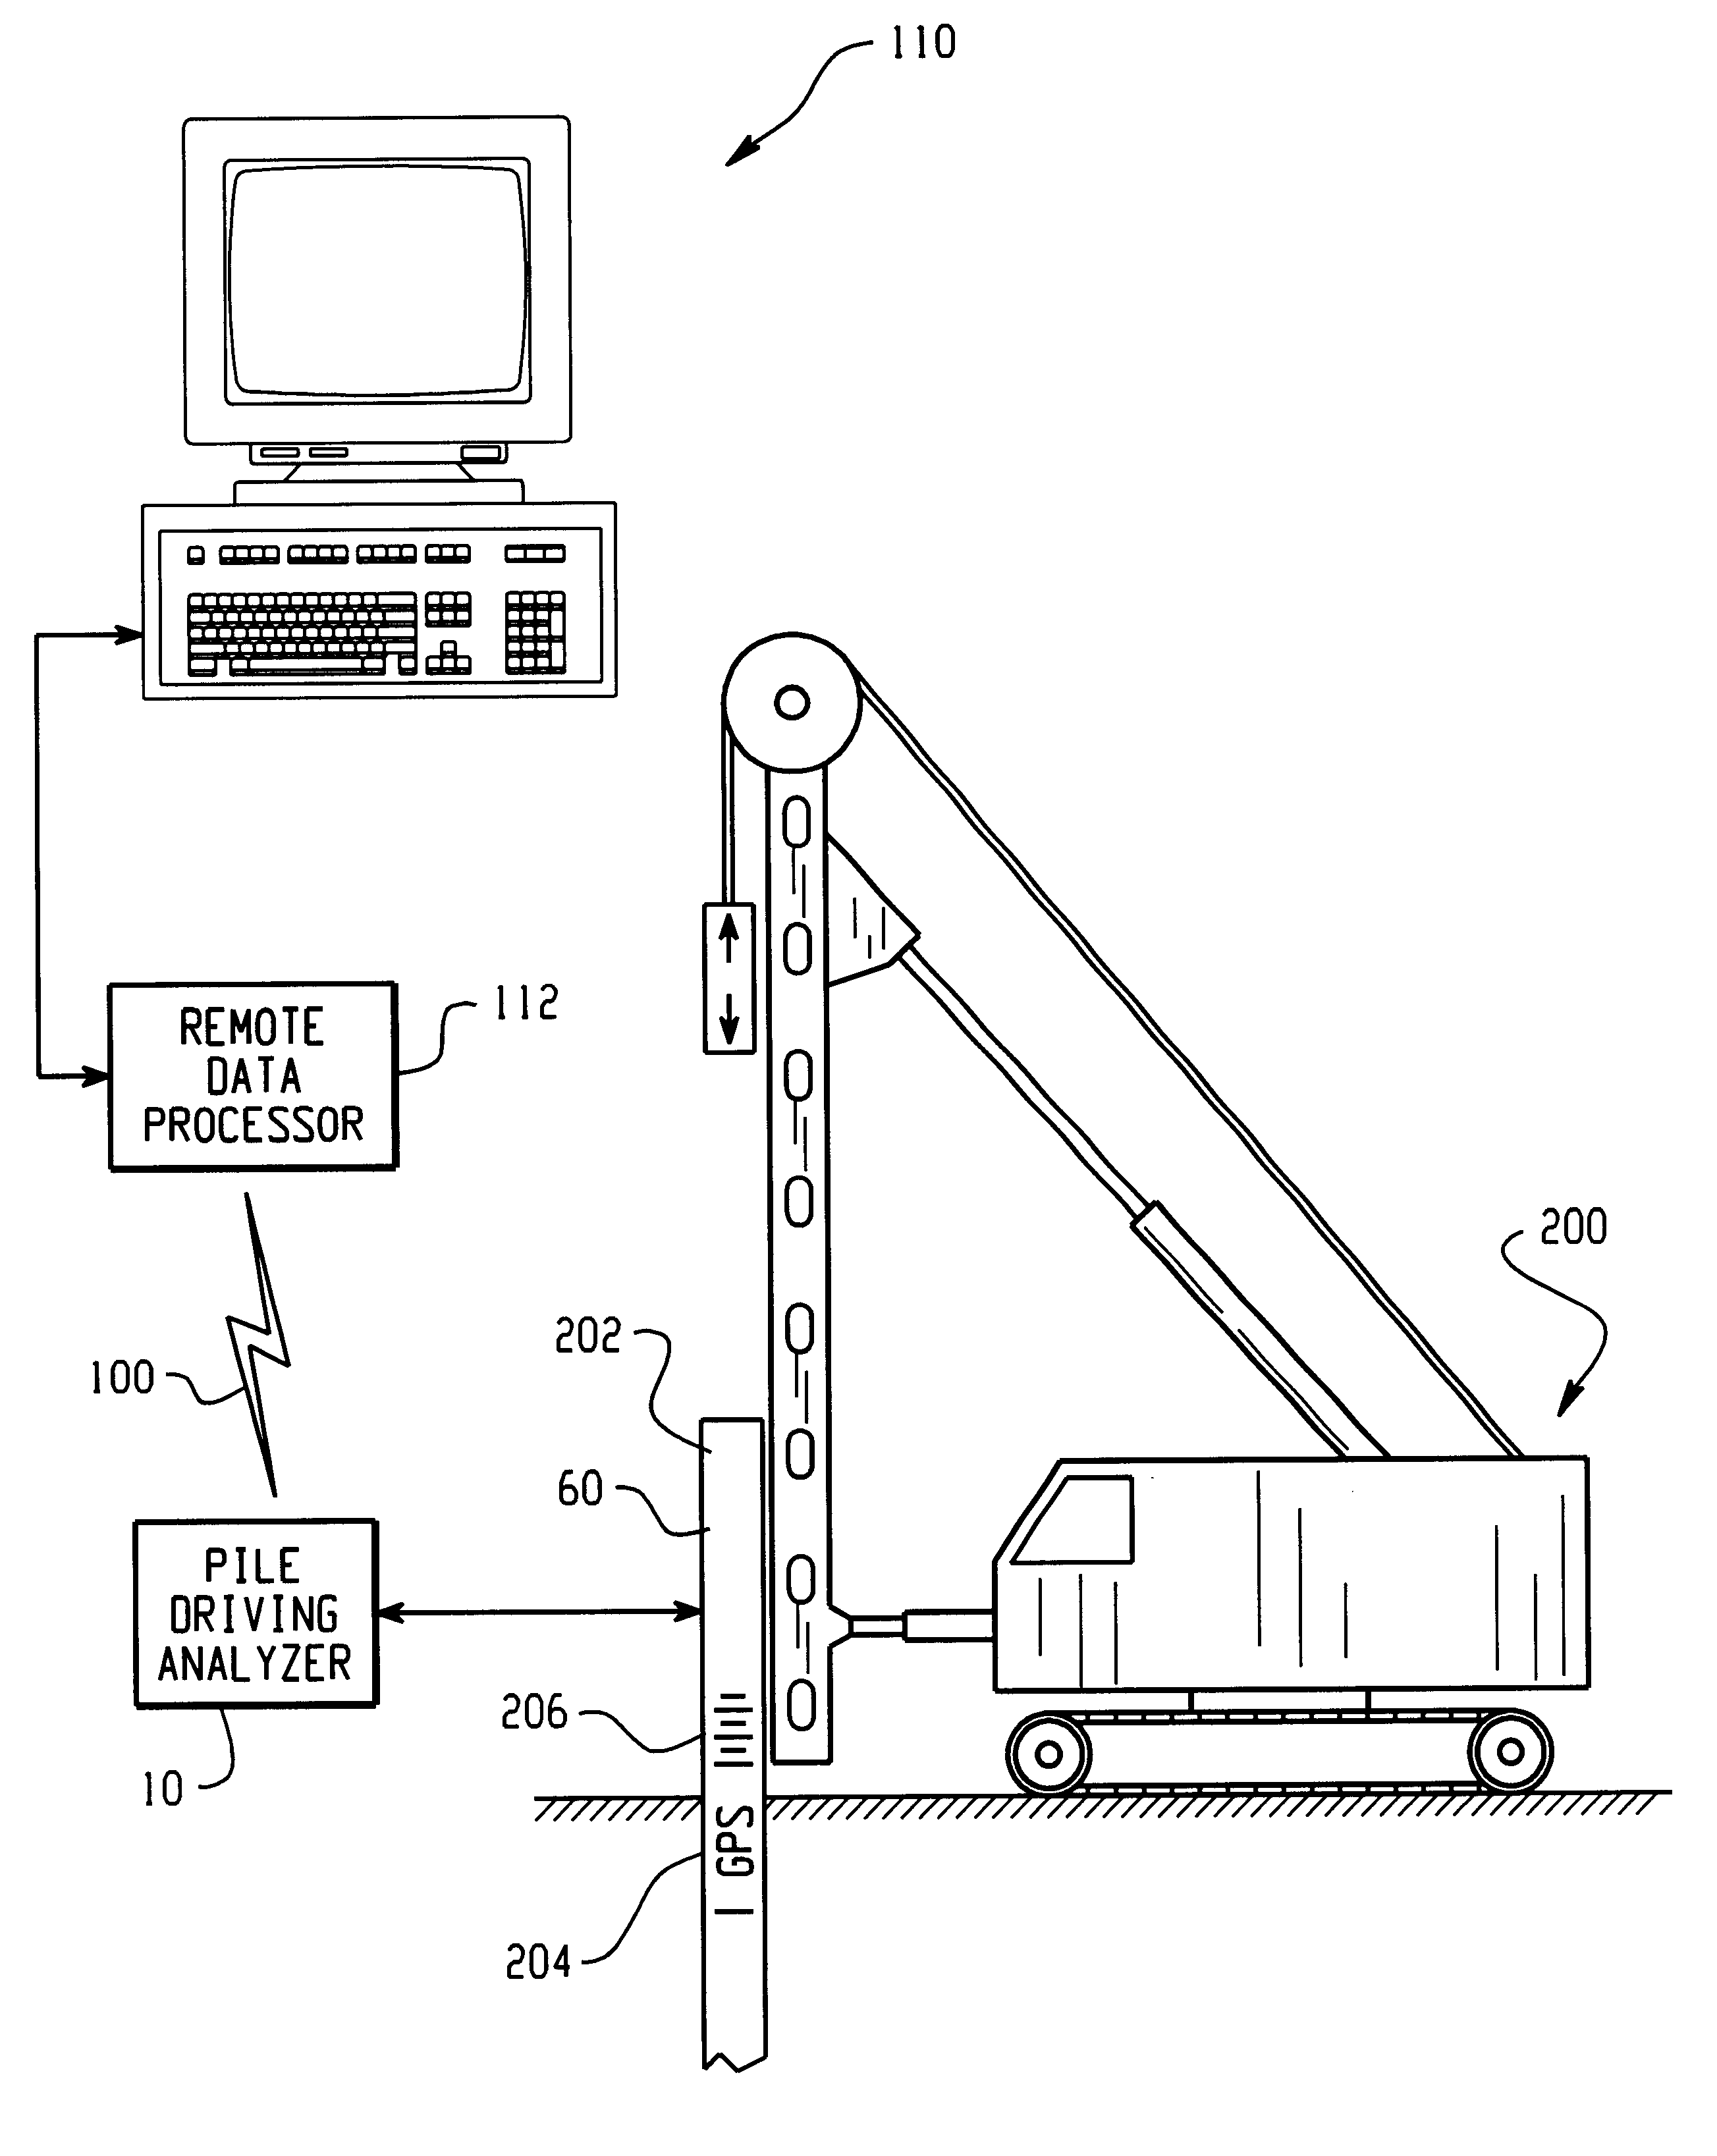 patent us6301551 - remote pile driving analyzer